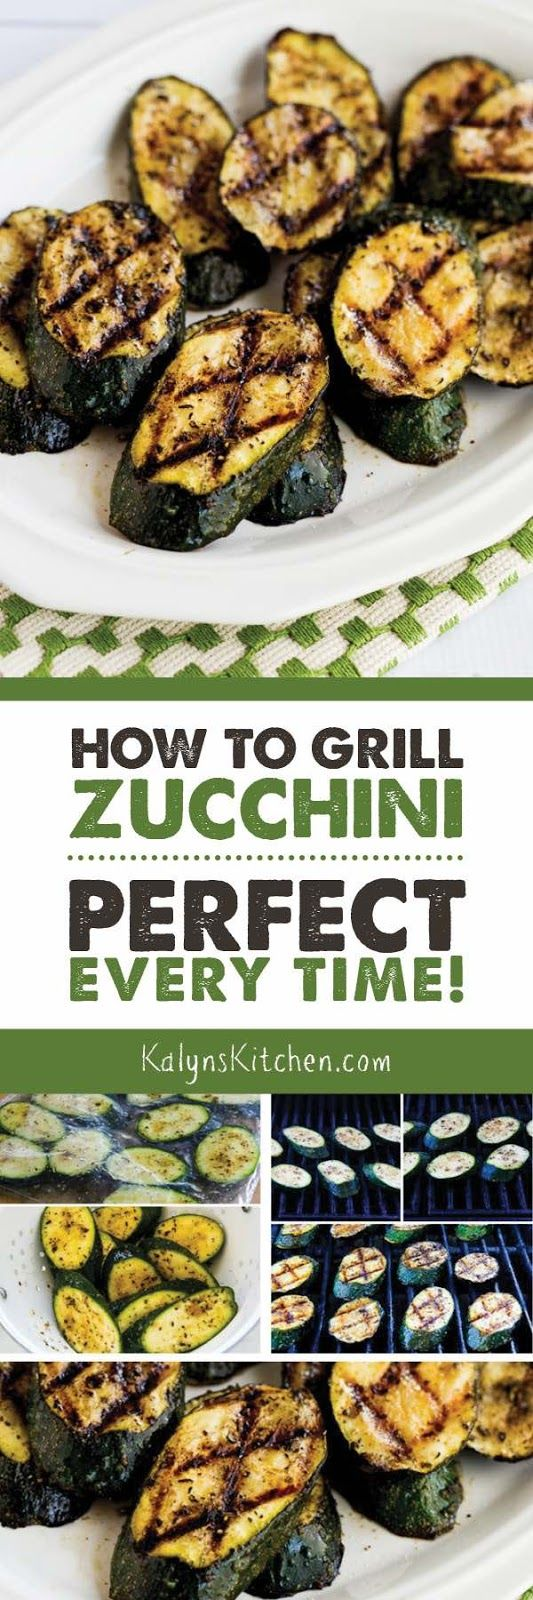 How to Grill Zucchini - Perfect Every Time! | How To Grill Zucchini ...